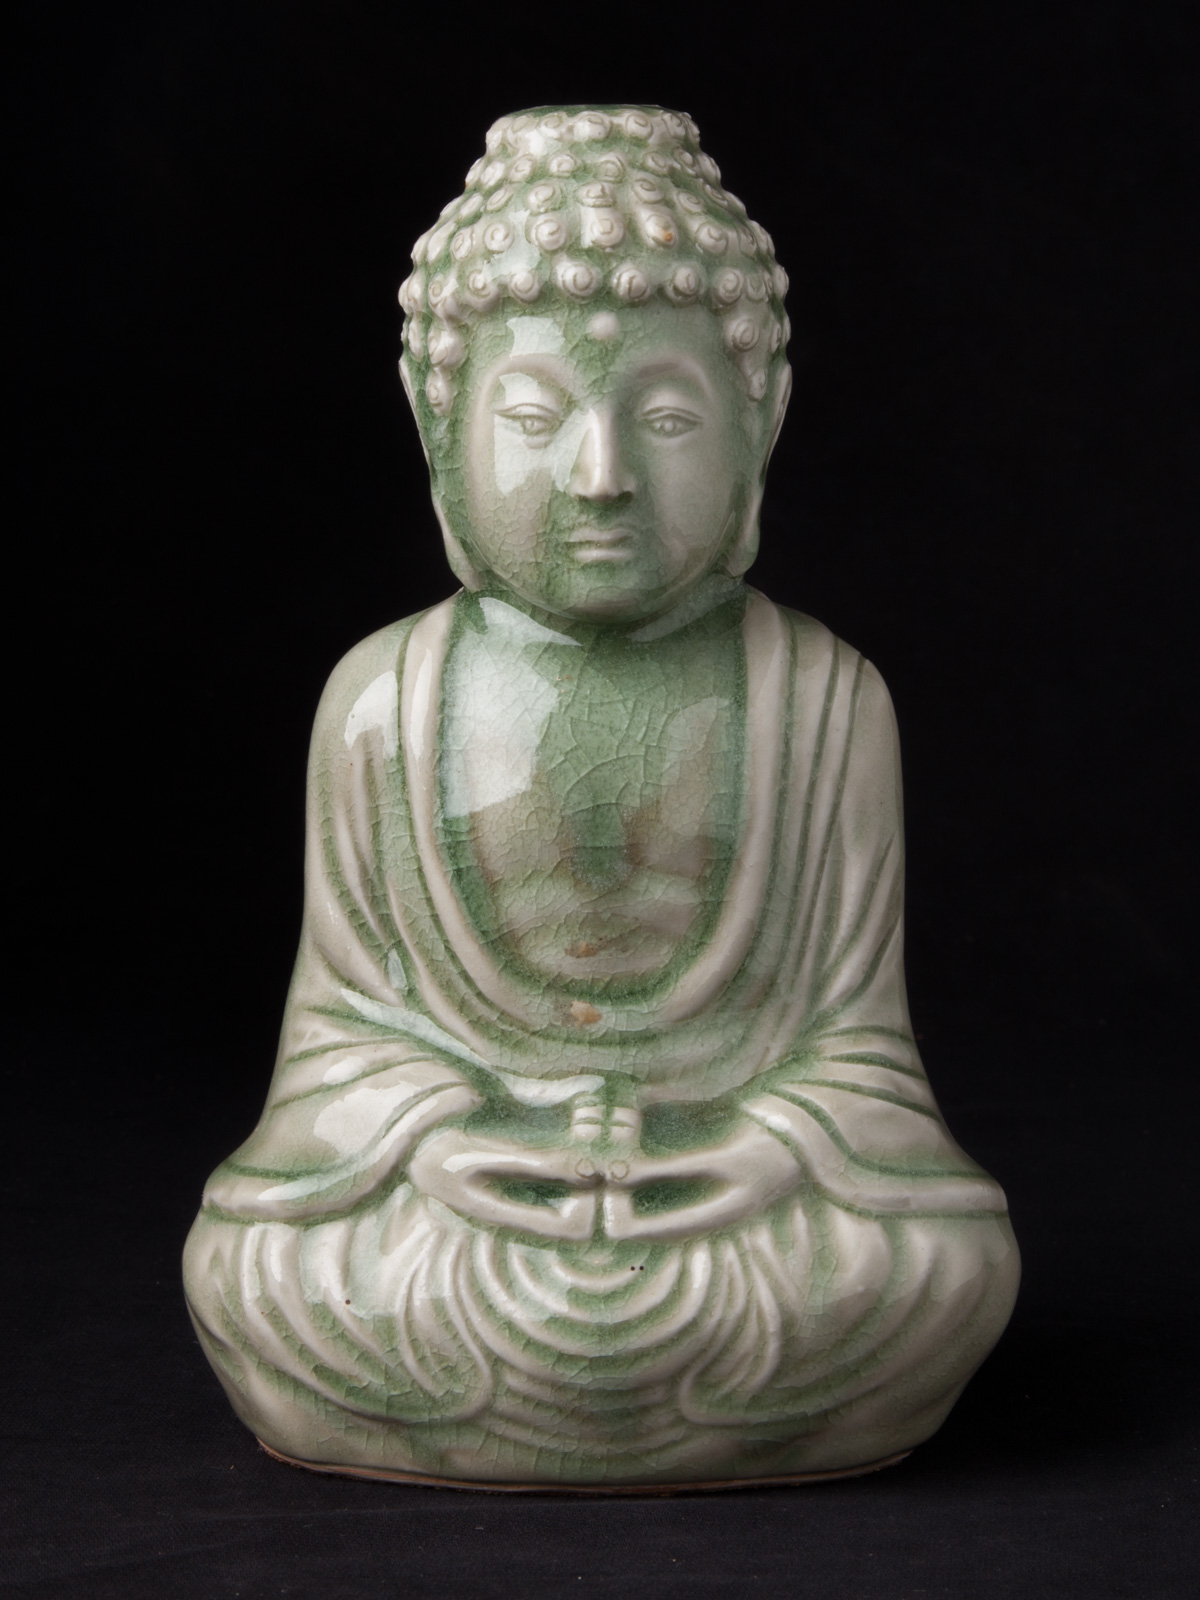 Old porcelain Buddha statue from China